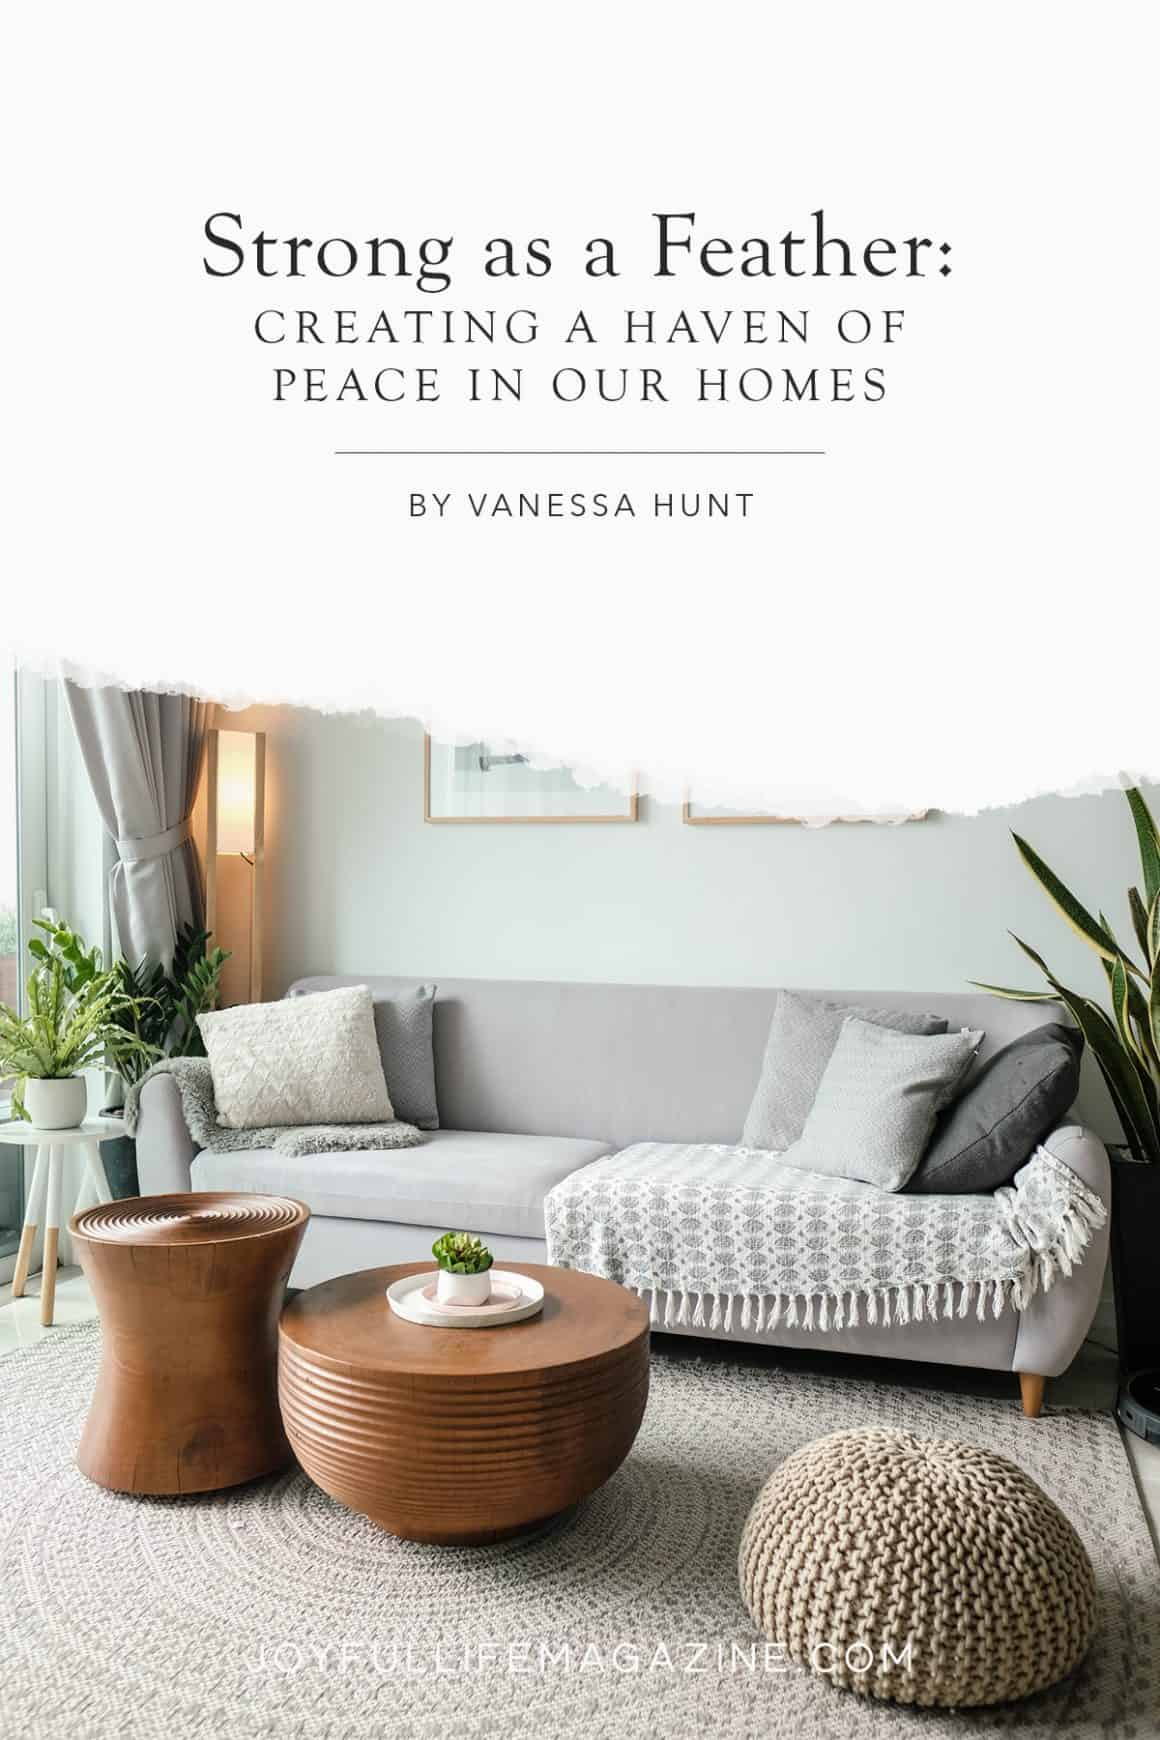 creating peace in our homes | a peaceful living room with a couch, pillows, and small tables